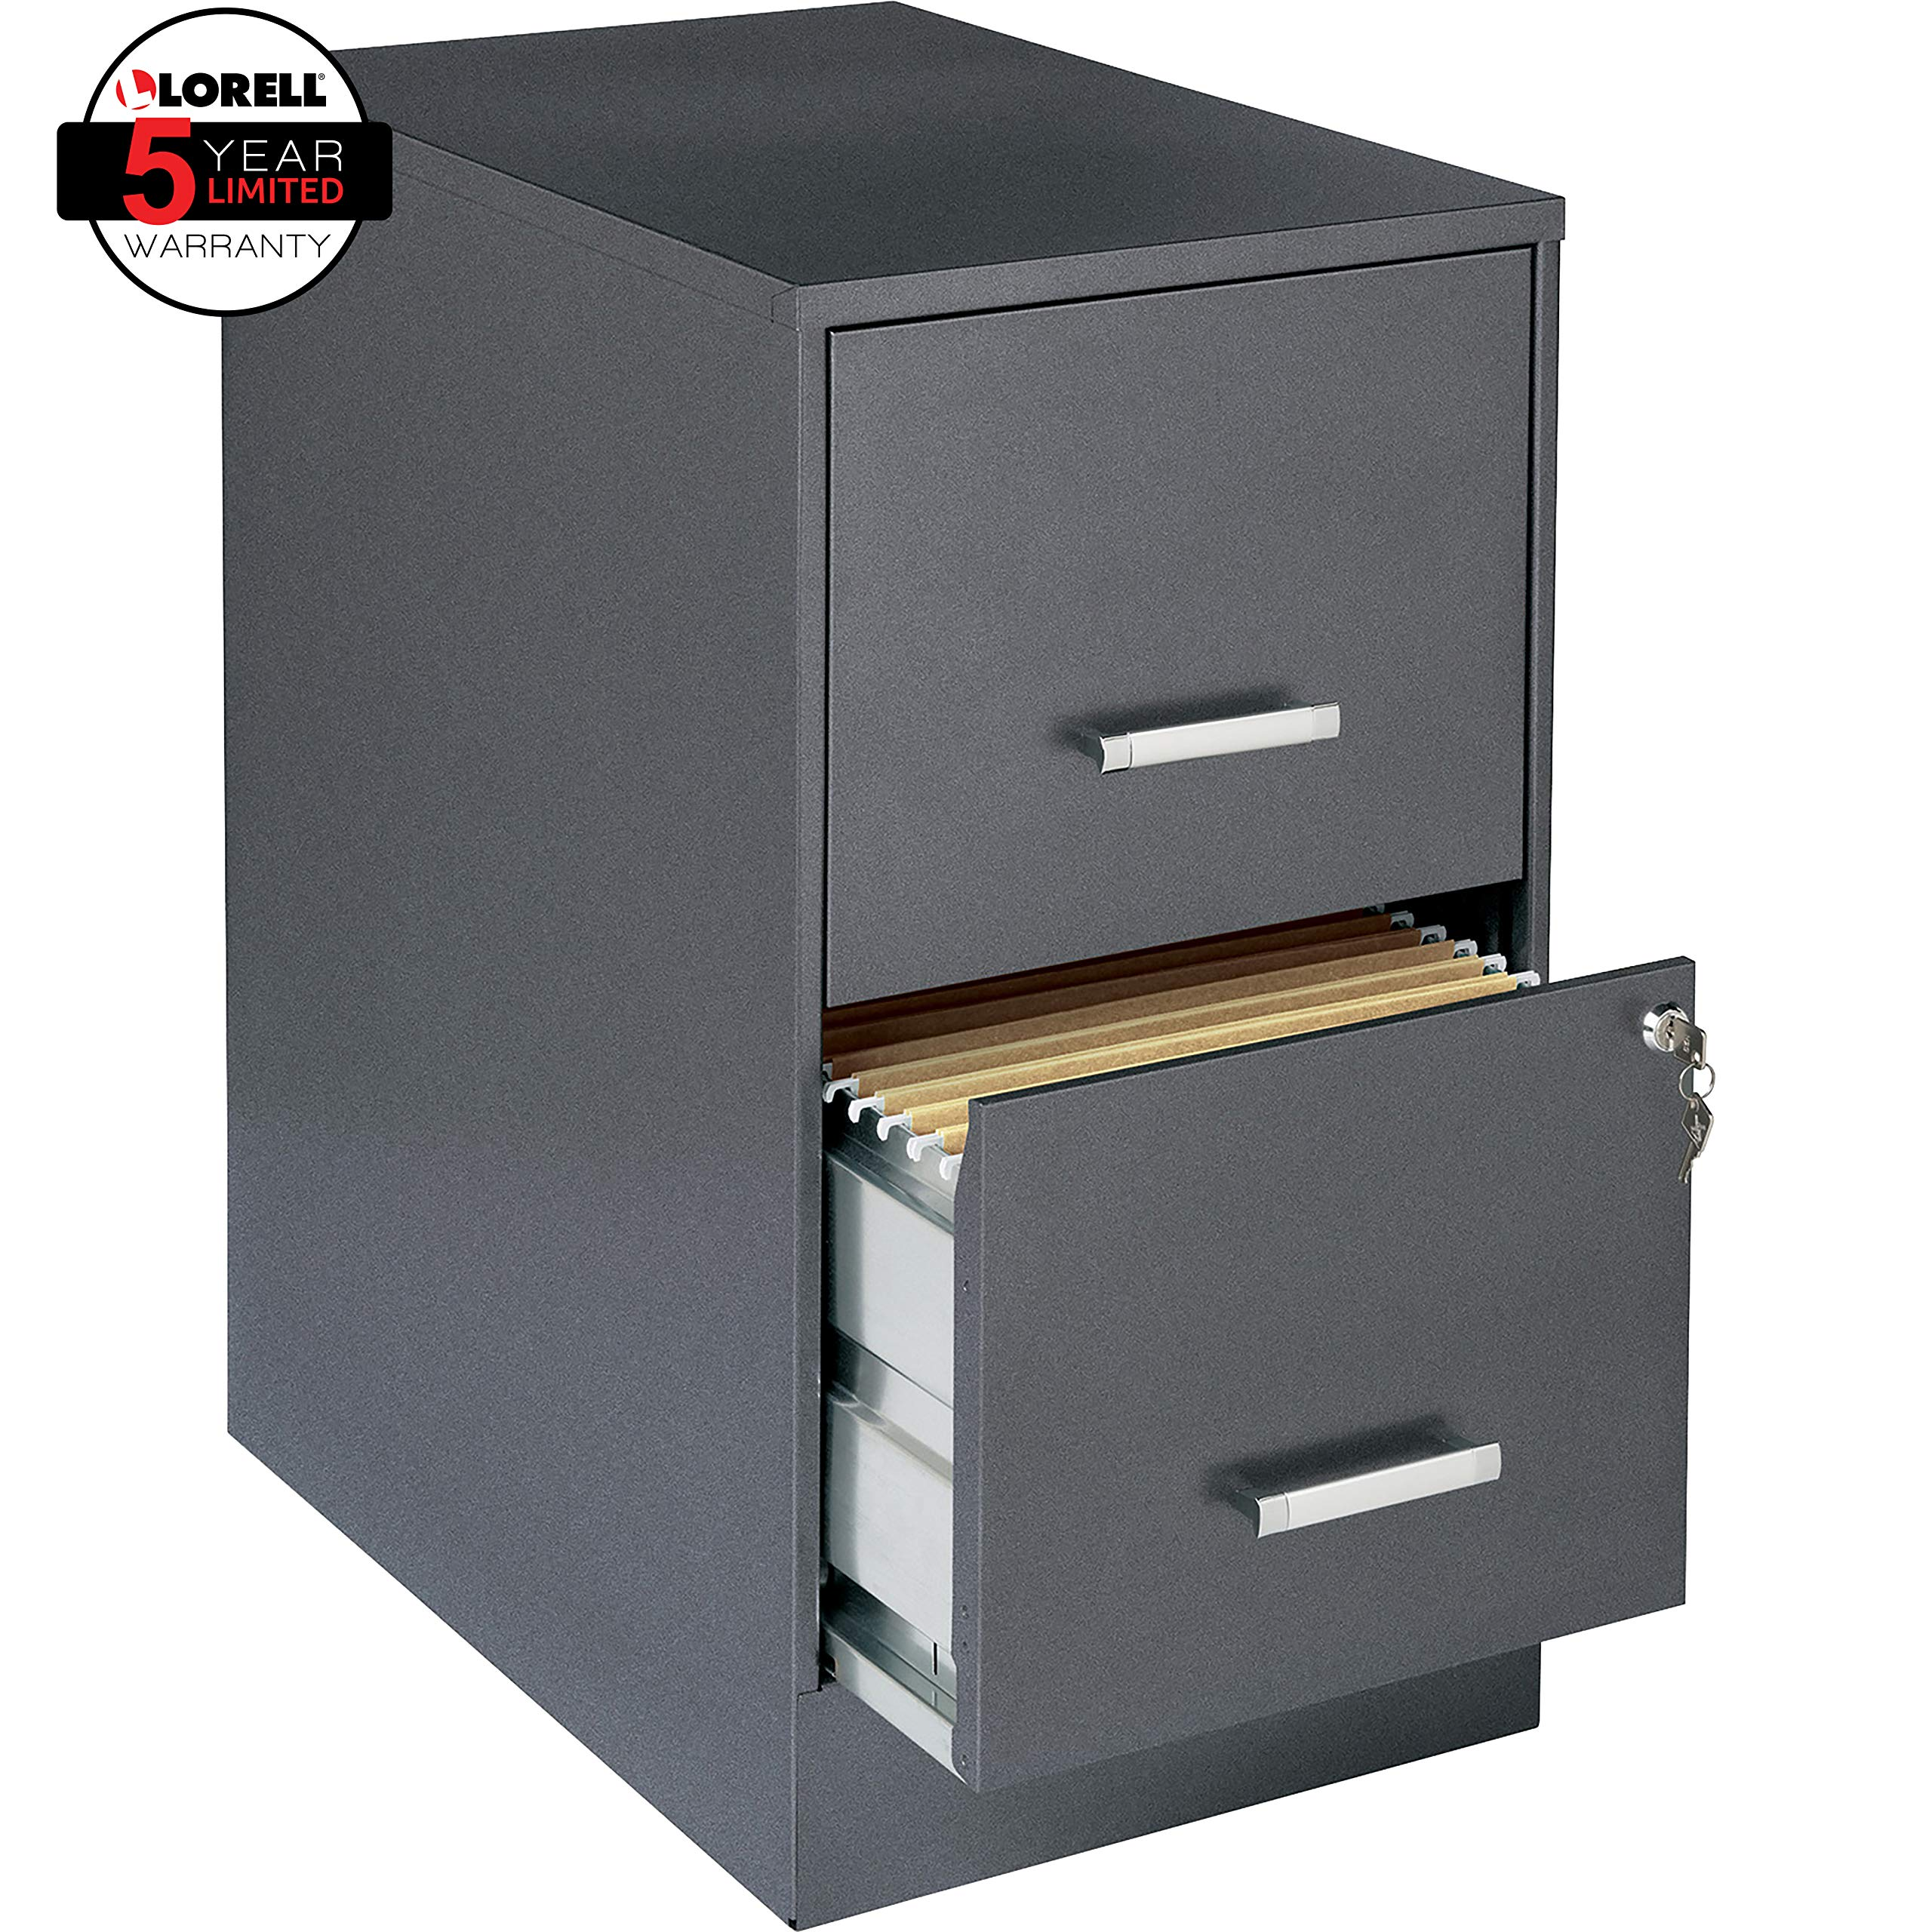 Lorell Office Dimensions 22'' Deep 2 Drawer Letter-Sized Metal File Cabinet, Metallic Charcoal (16871)